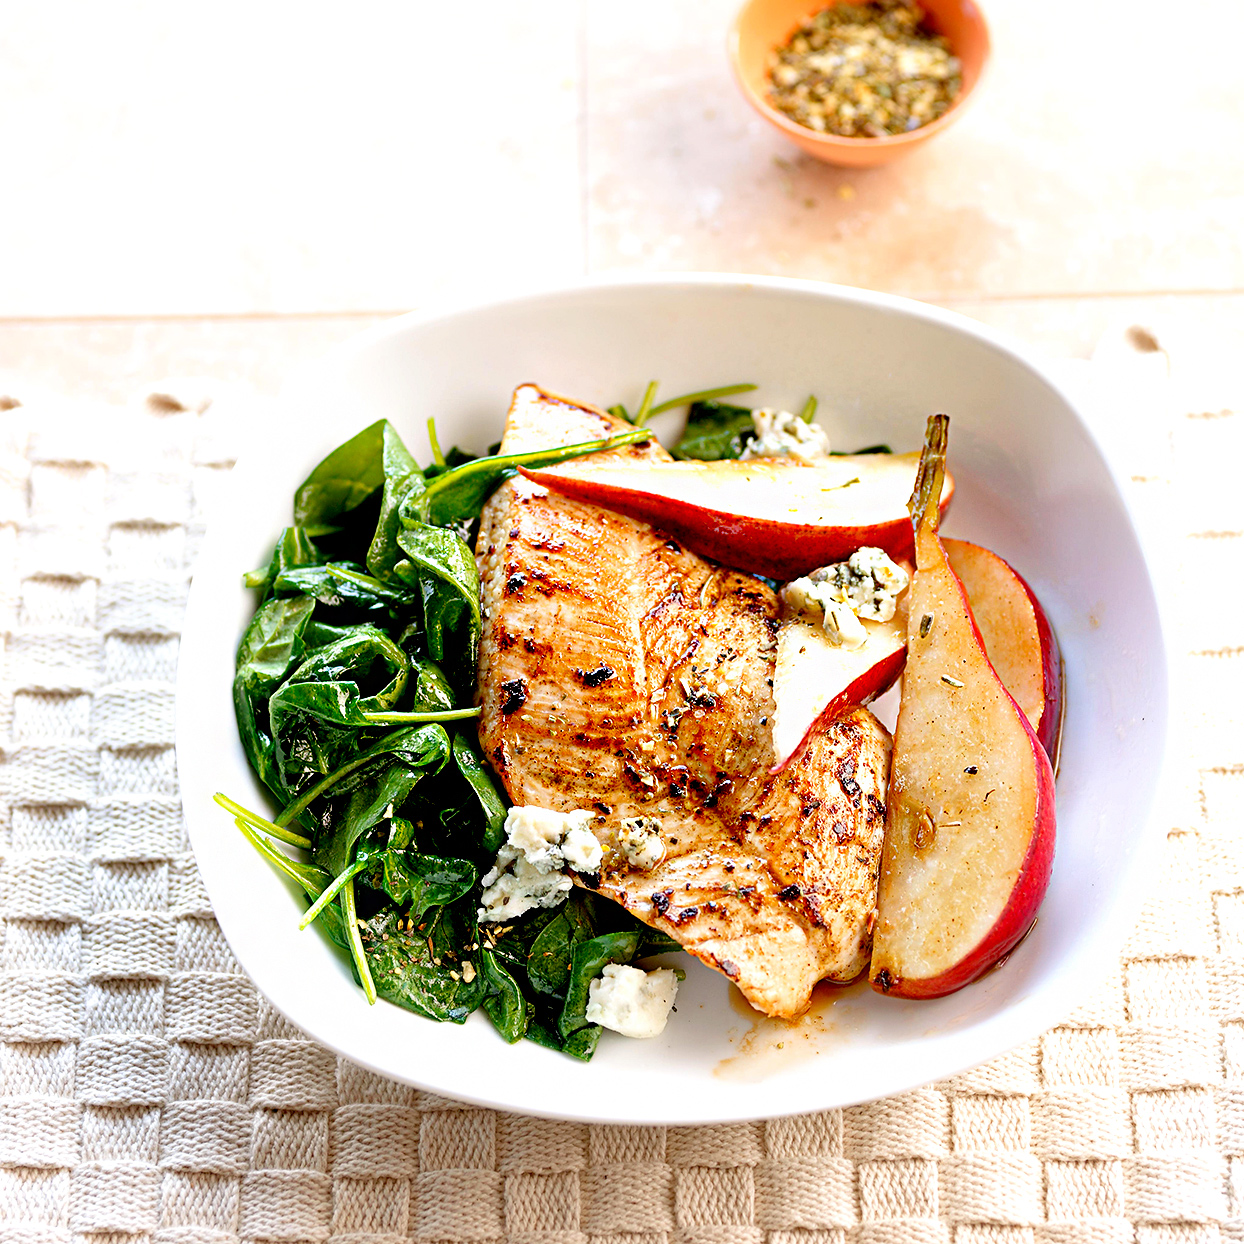 Turkey Steaks with Spinach, Pears, and Blue Cheese